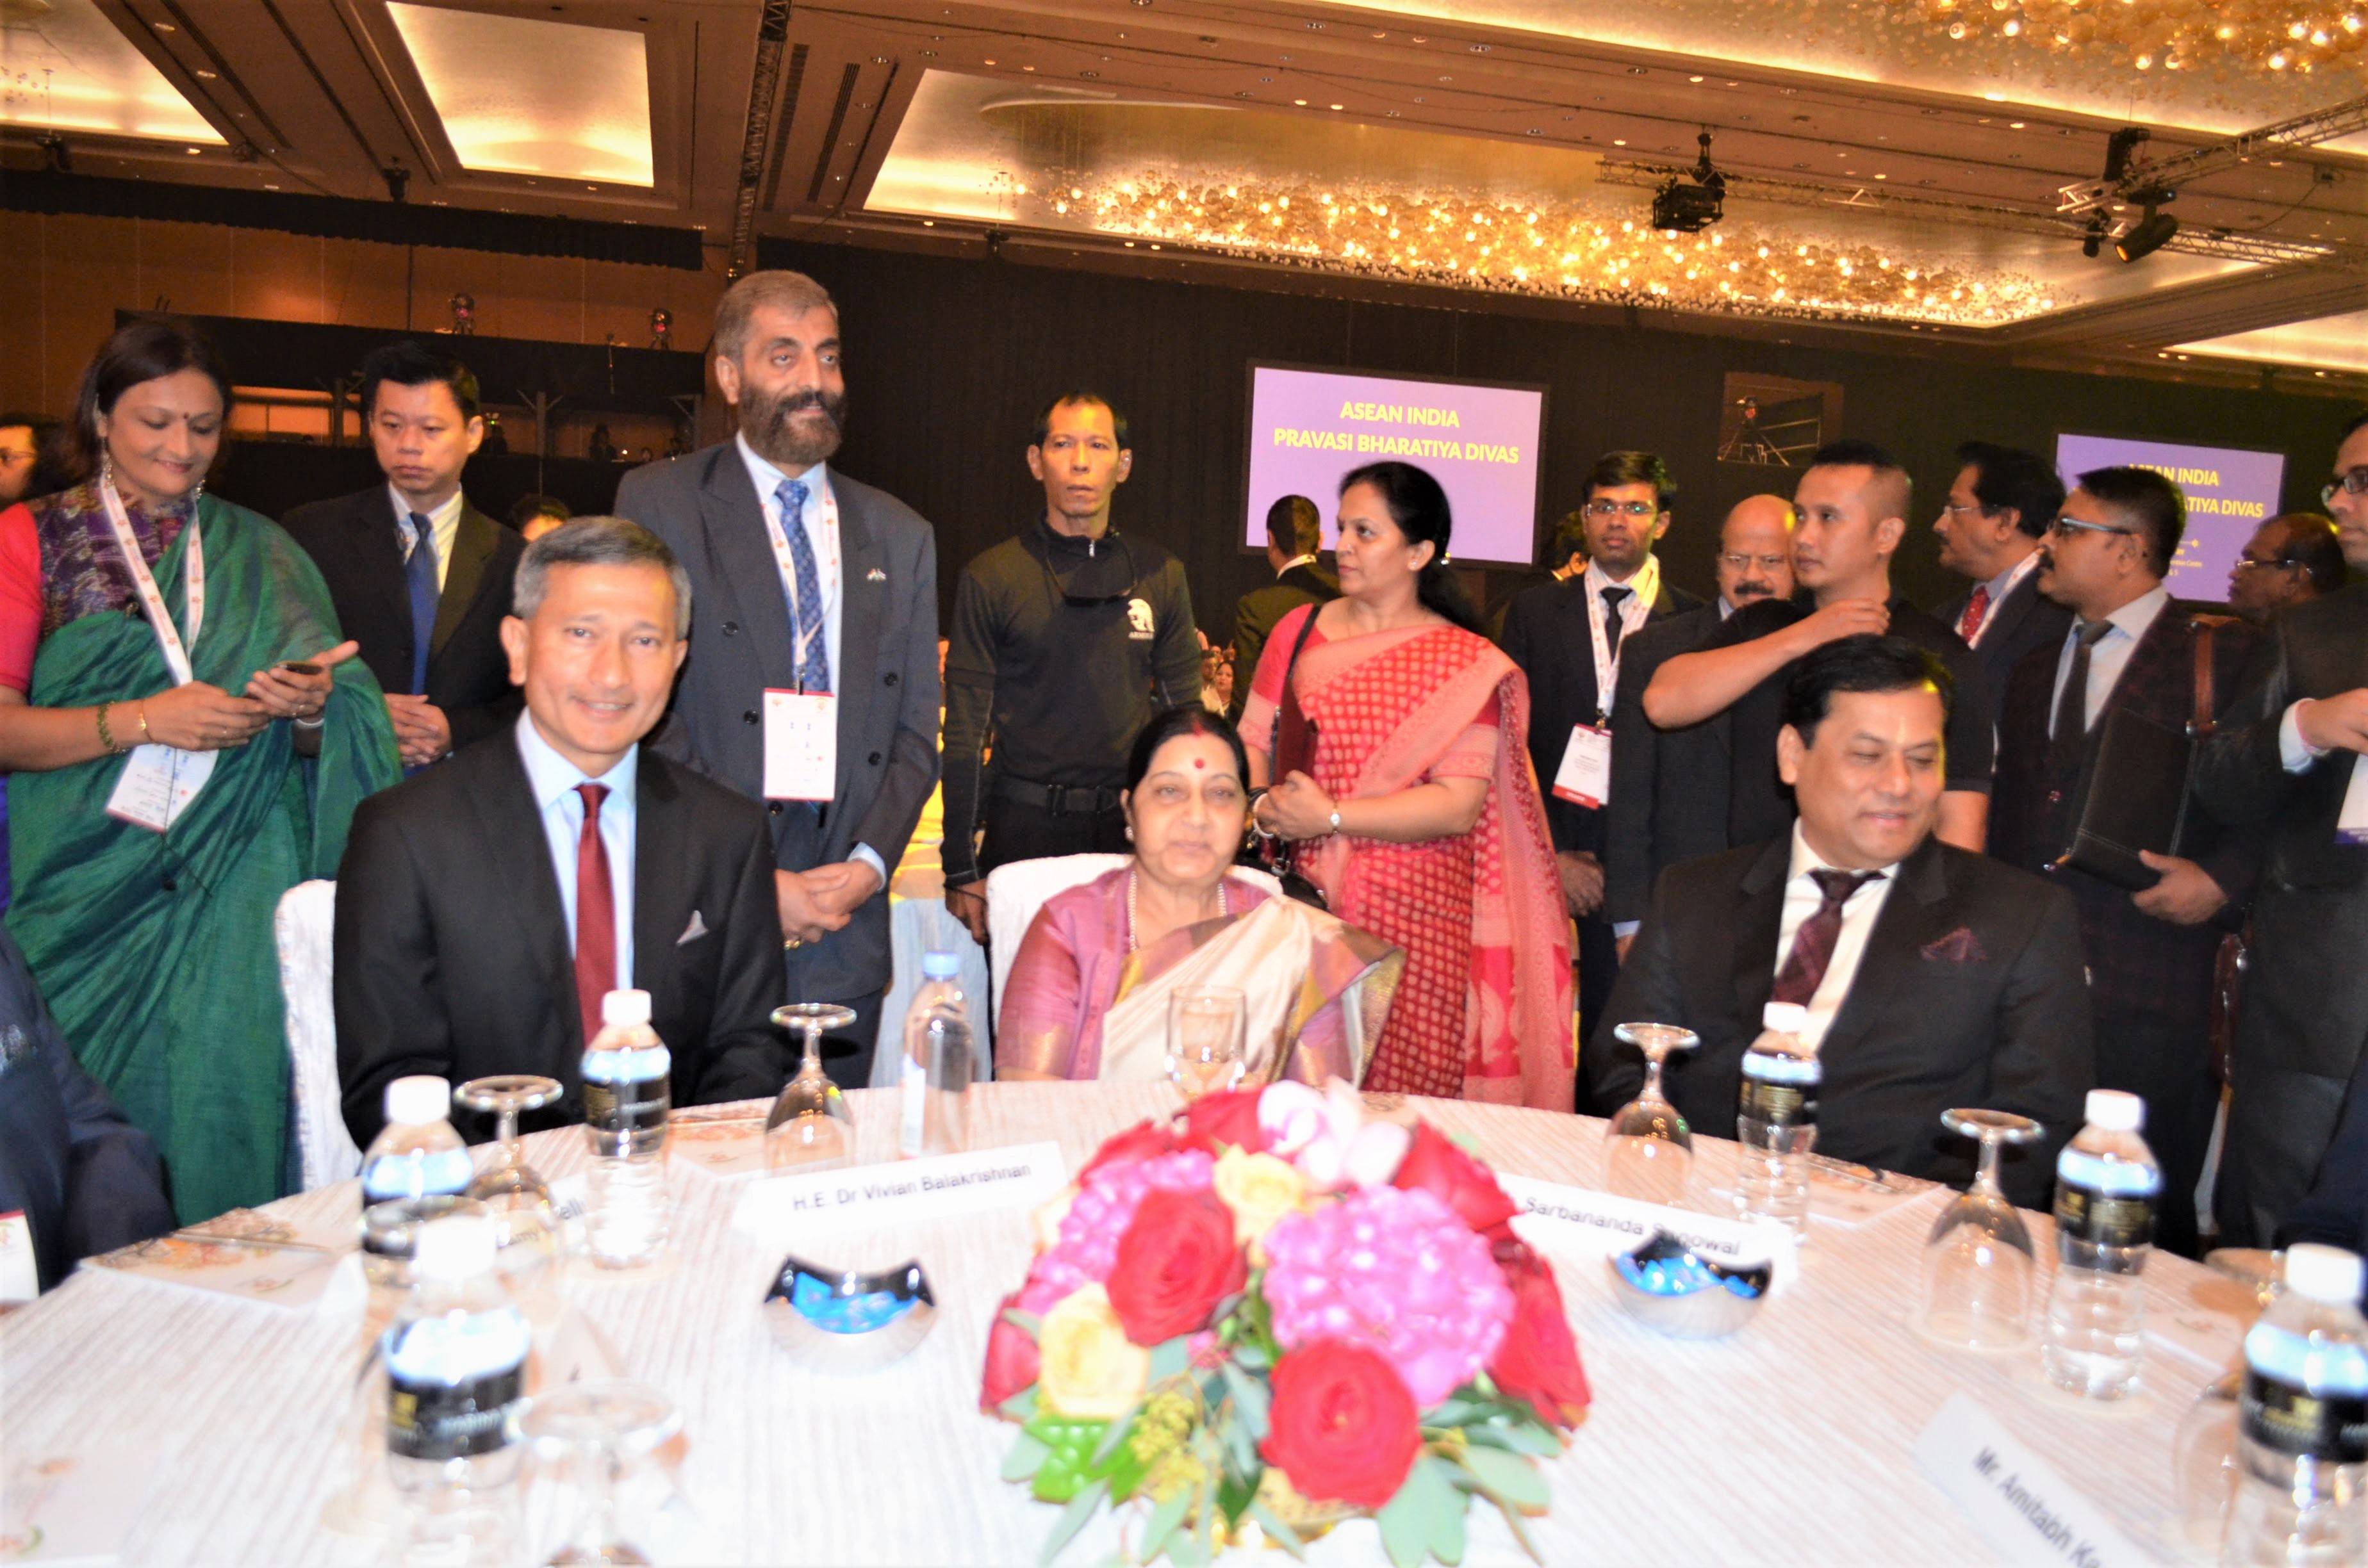 Singapore Foreign Minister Dr Vivian Balakrishnan (left) with Indian External Affairs Minister Sushma Swaraj (centre) and Assam Chief Minister Sarbananda Sonowal at the ASEAN-India Pravasi Bharatiya Divas in Singapore. Photo: Connected to India